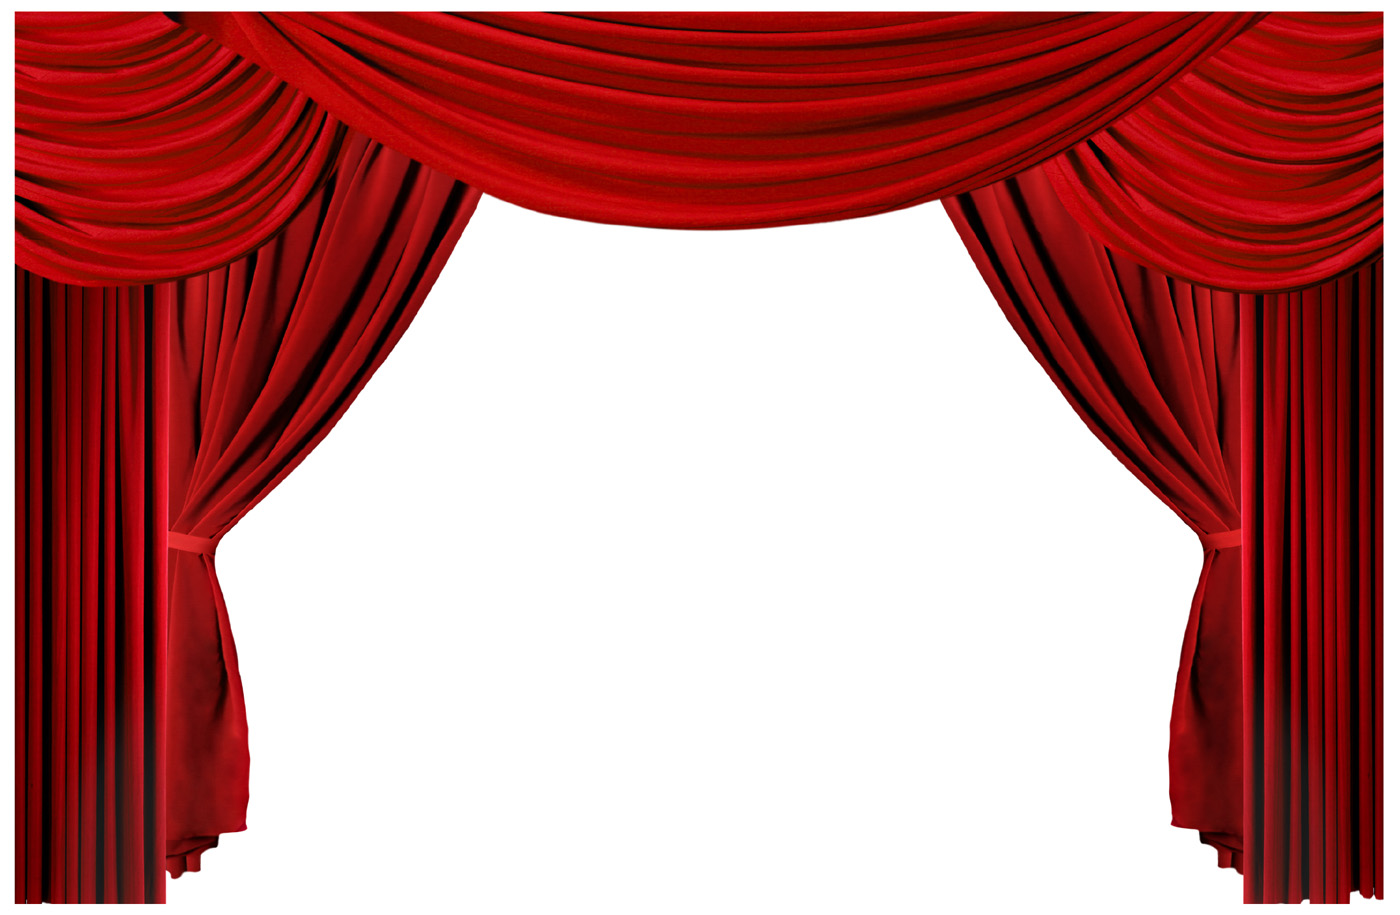 Red curtain curtain 11054 - Stage venue - Others